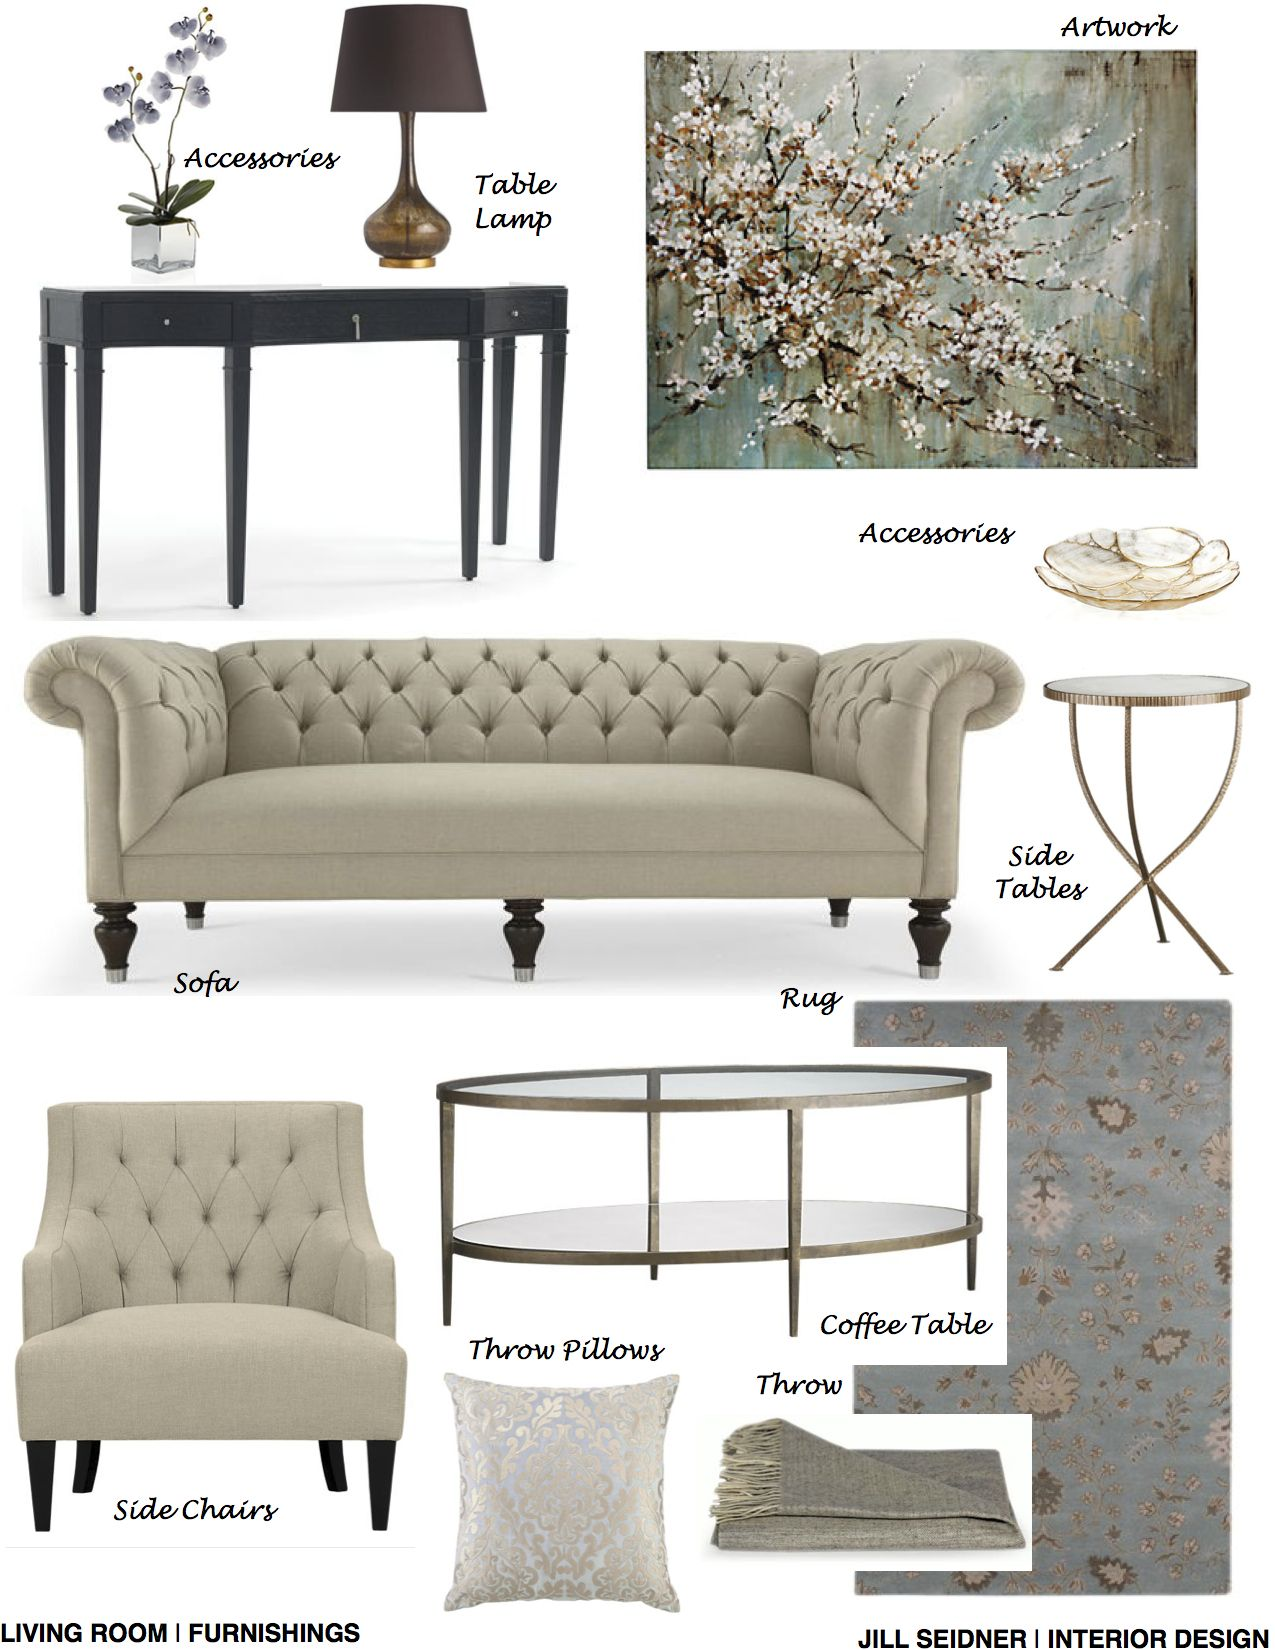 Arcadia, CA Online Design Project Living Room Furnishings Concept ...